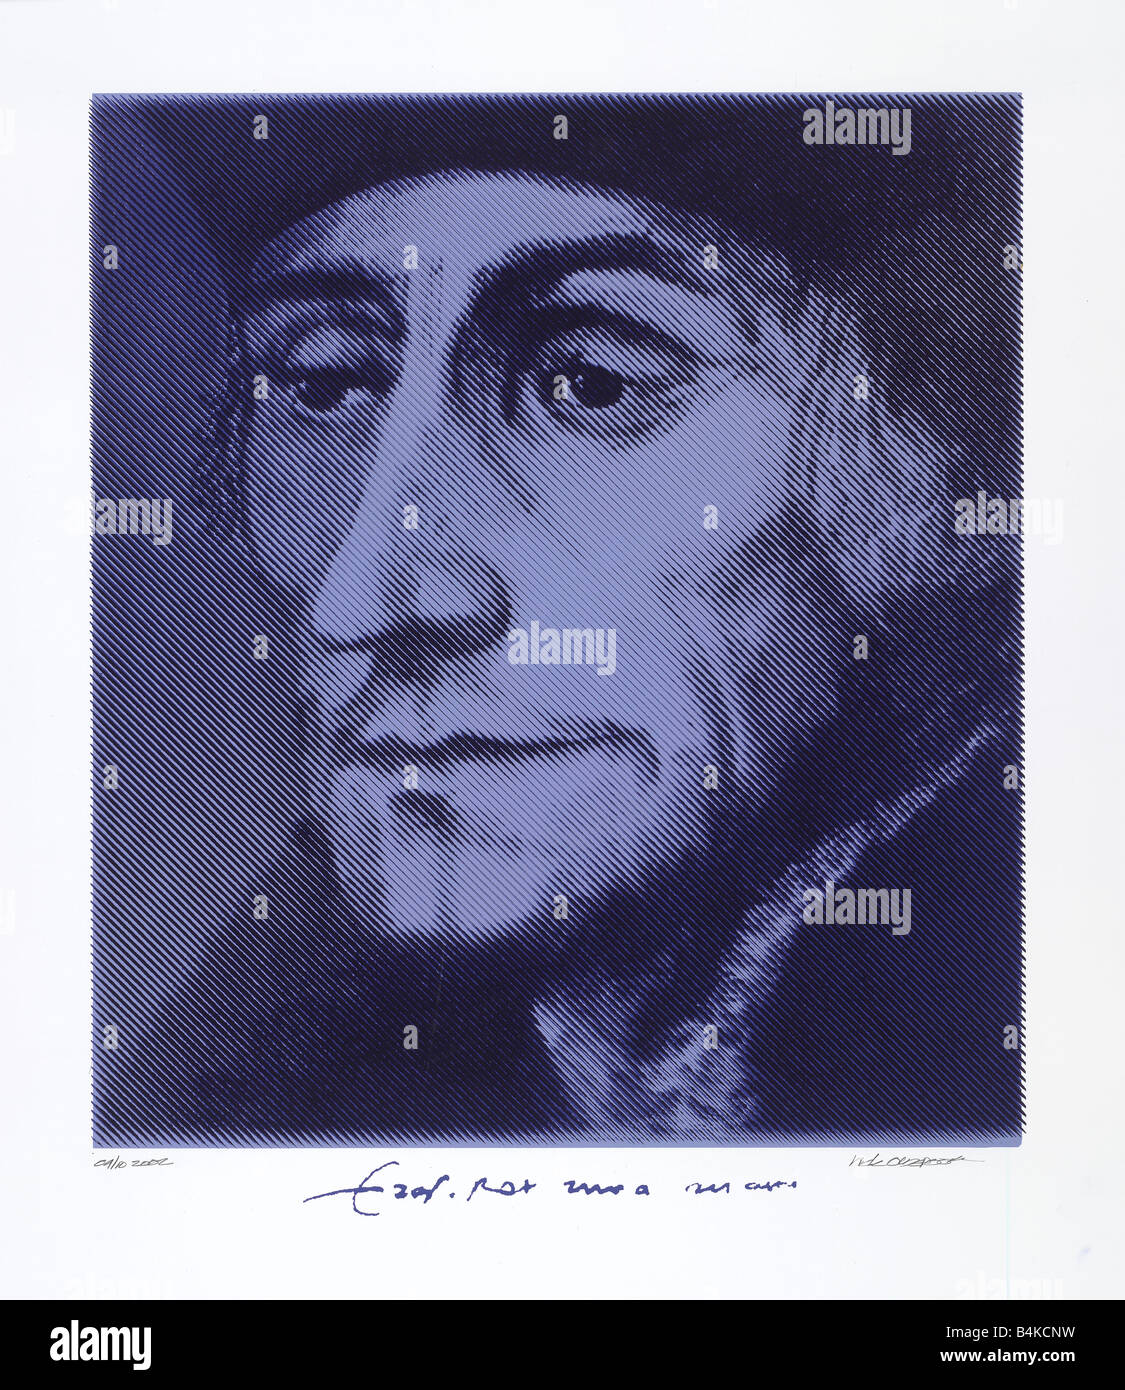 Desiderius Erasmus Dutch Renaissance humanist and 1469 -1536, silkscreen with signature made of a painting by nick - Stock Image